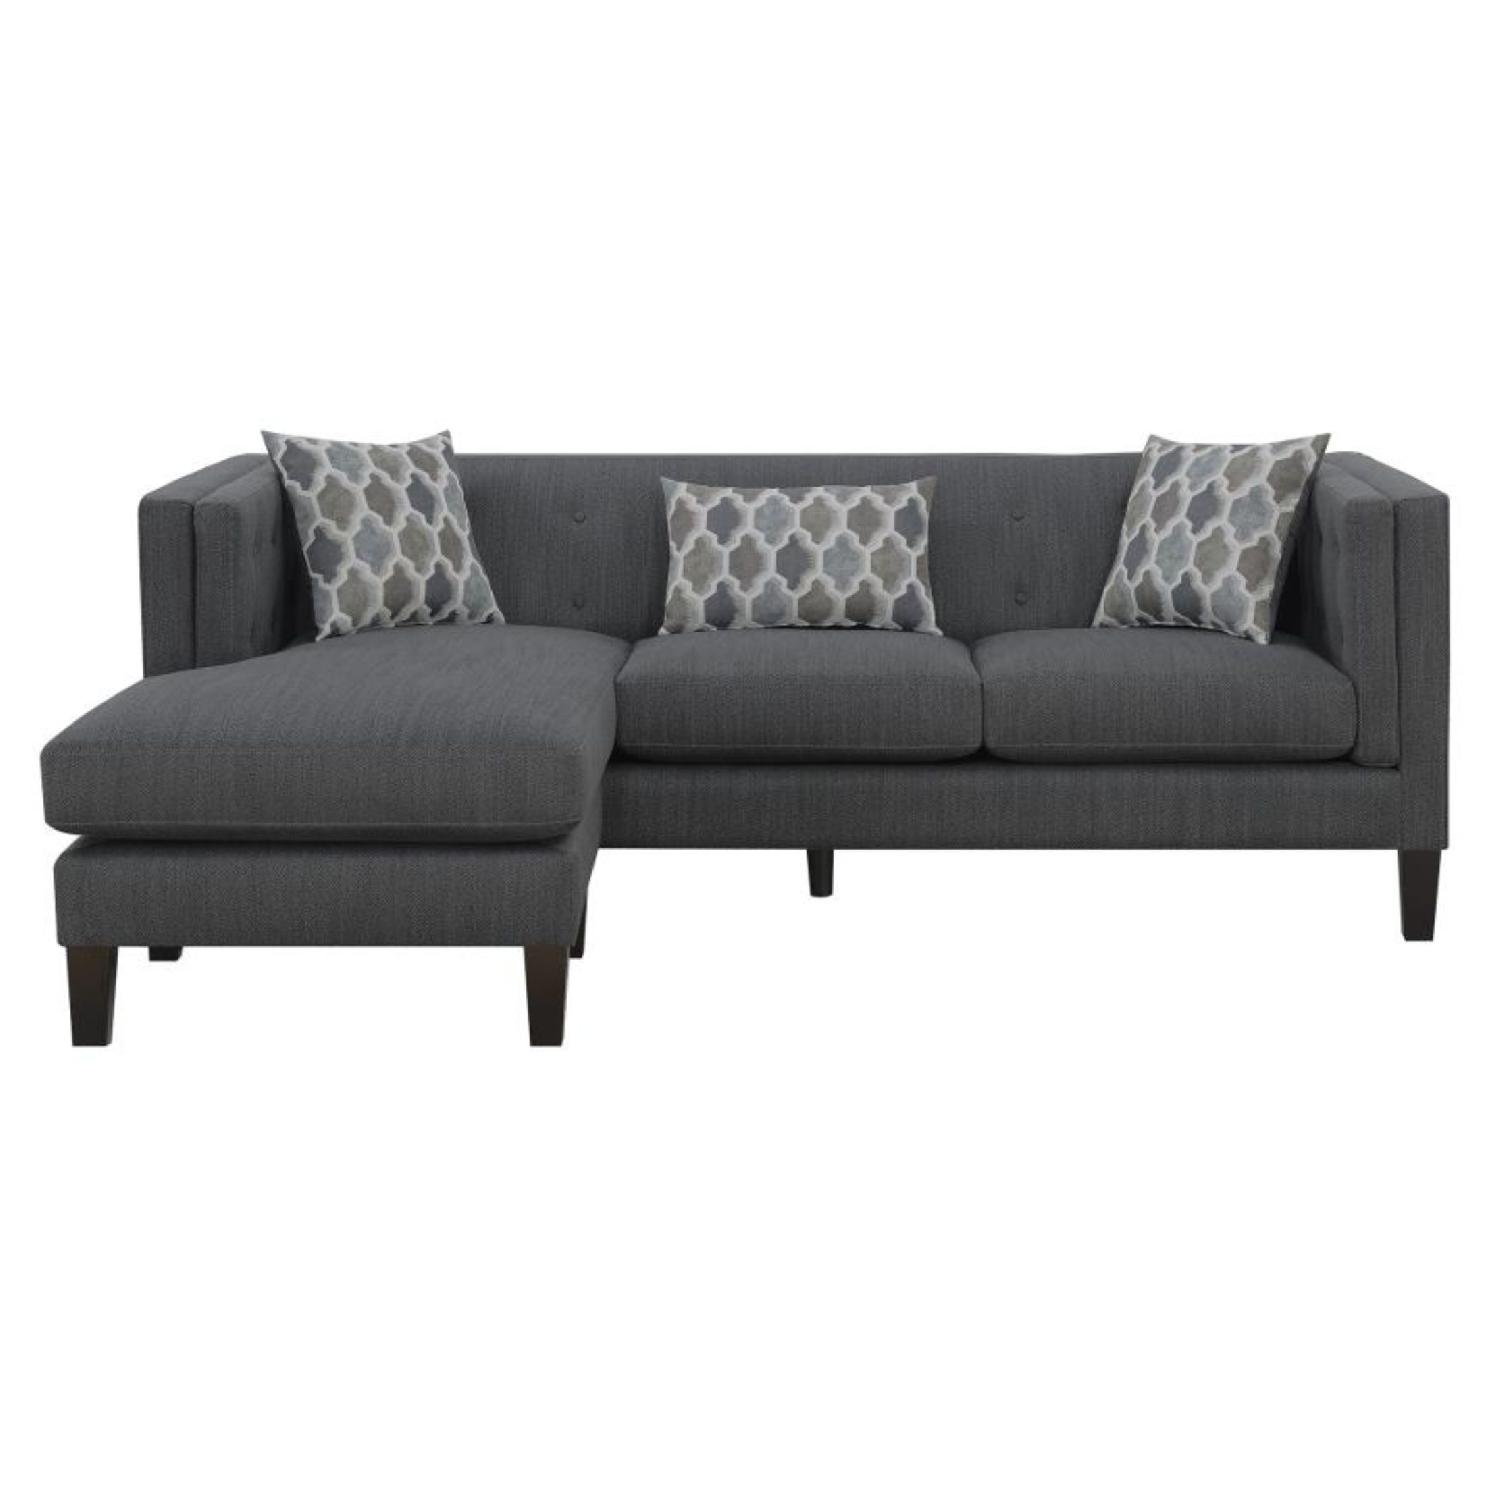 Dusty Blue Modern Sectional Sofa w/ Tufted Back